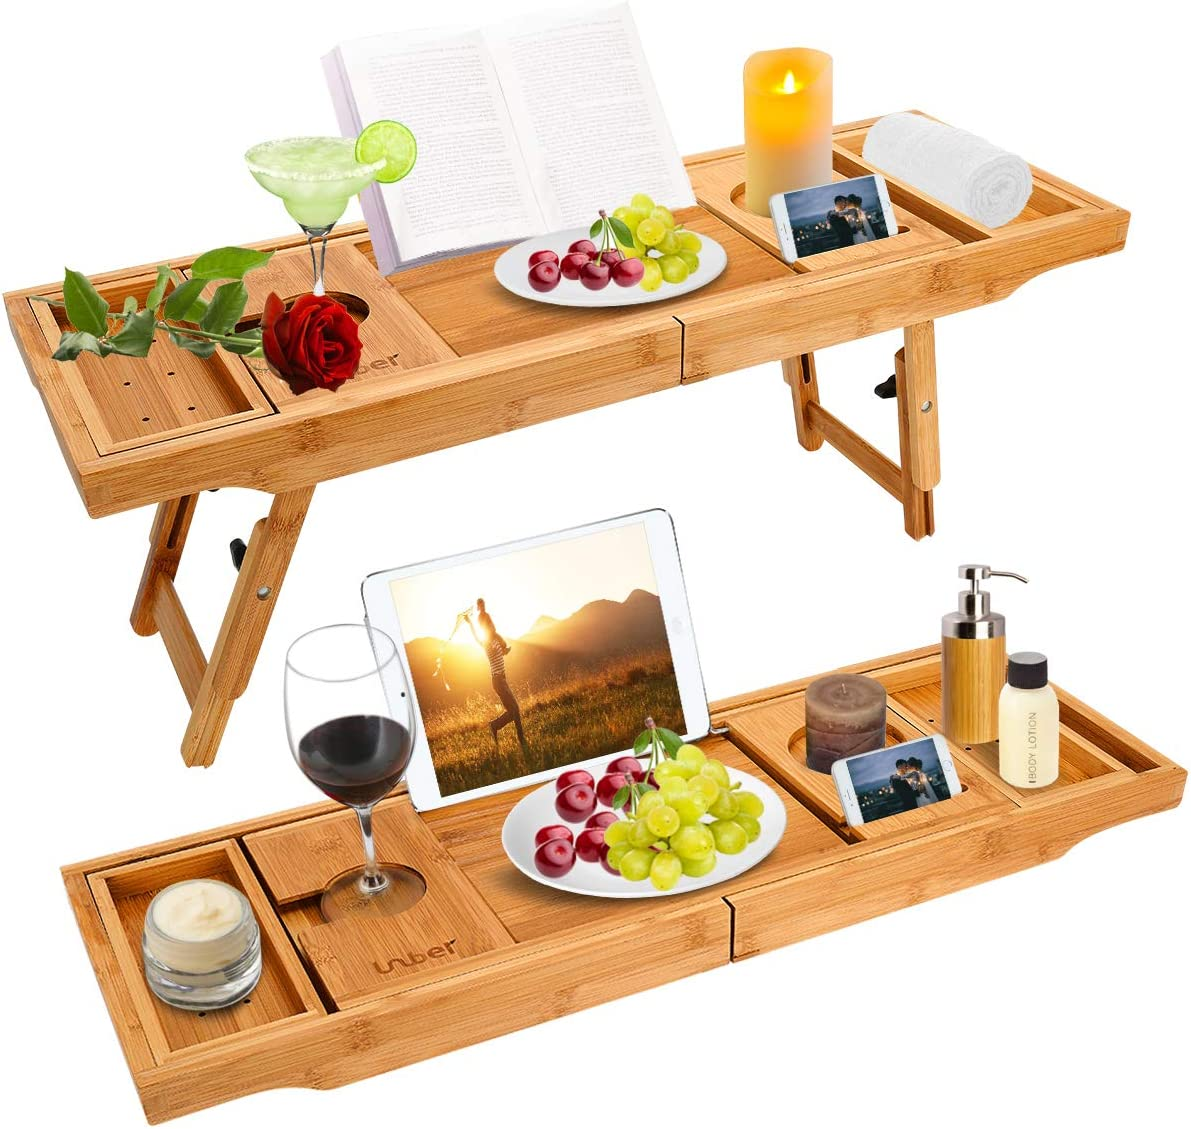 sold out Bathtub Caddy Tray Bath Table Dedication with Extending Bamboo Sides